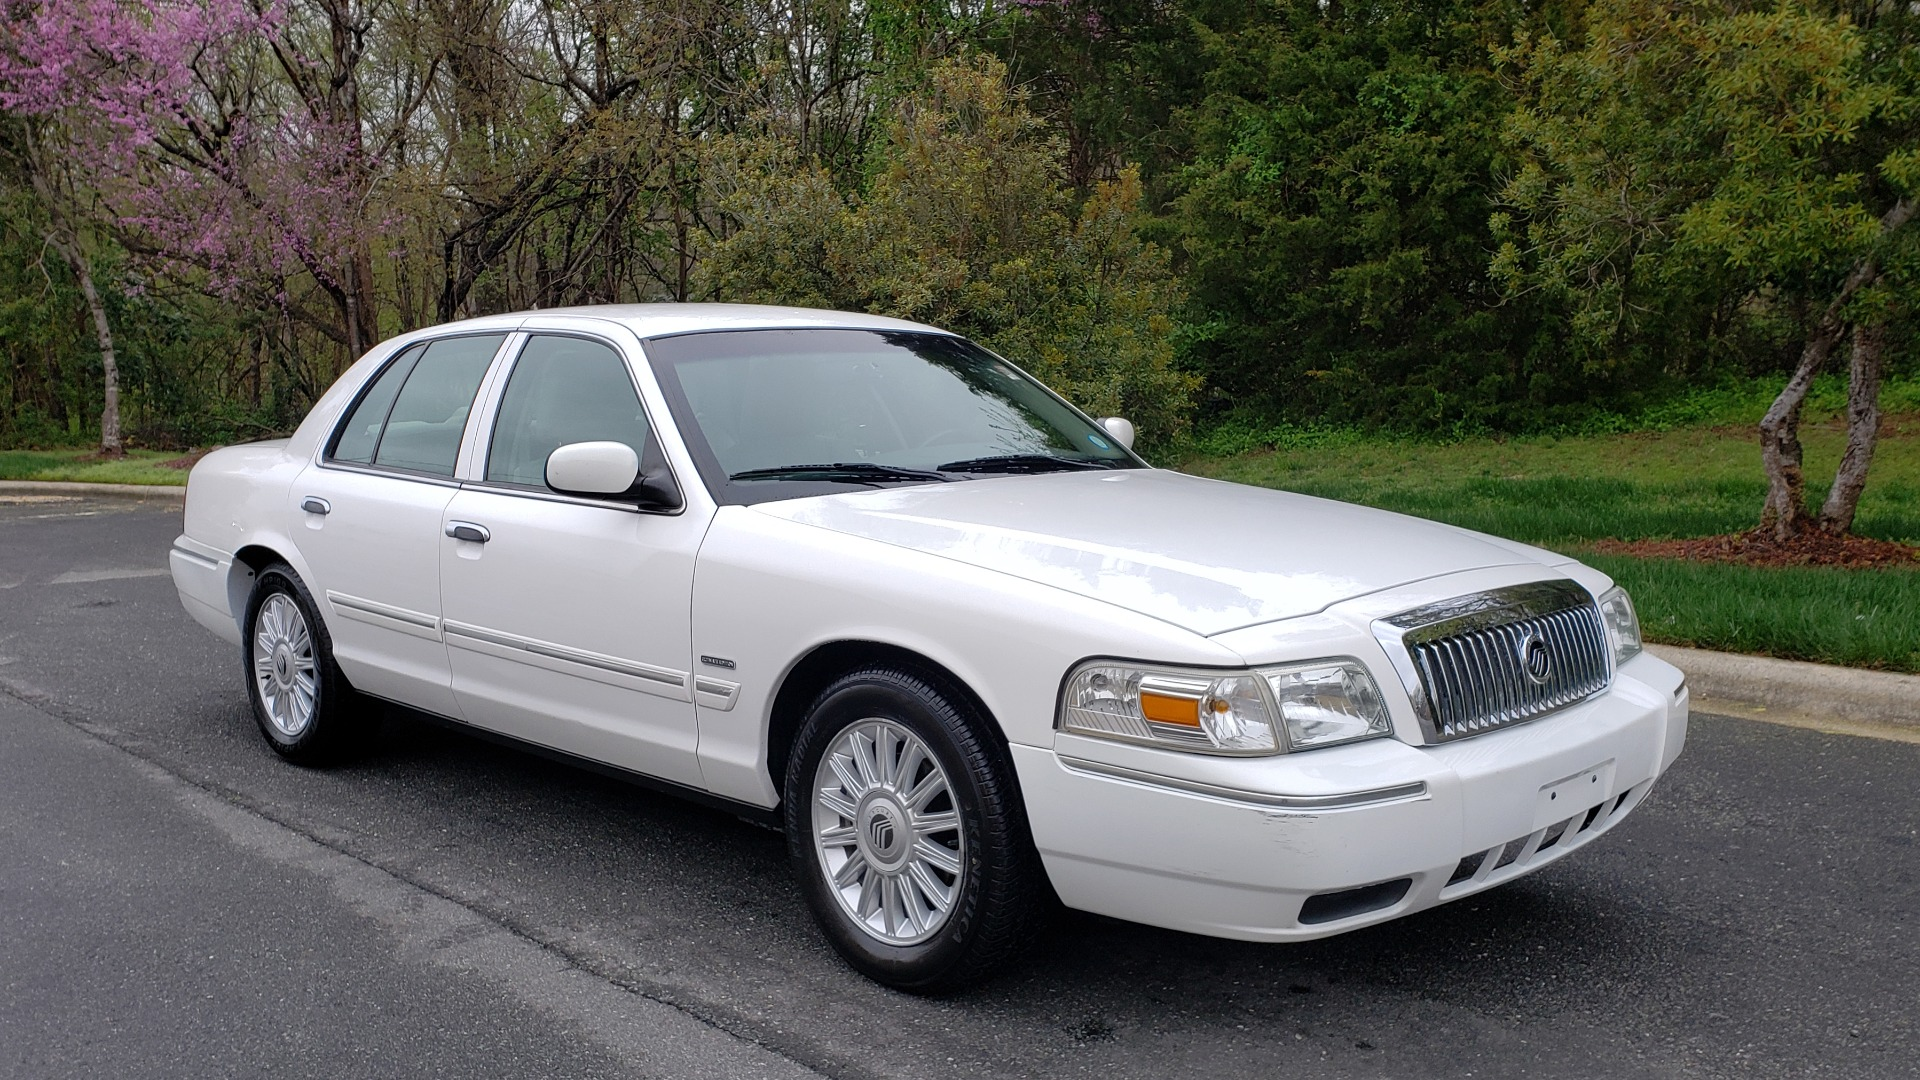 Used 2011 Mercury GRAND MARQUIS LS / 4.6L V8 / 4-SPD AUTO / KEYLESS ENTRY / LOW MILES for sale Sold at Formula Imports in Charlotte NC 28227 4